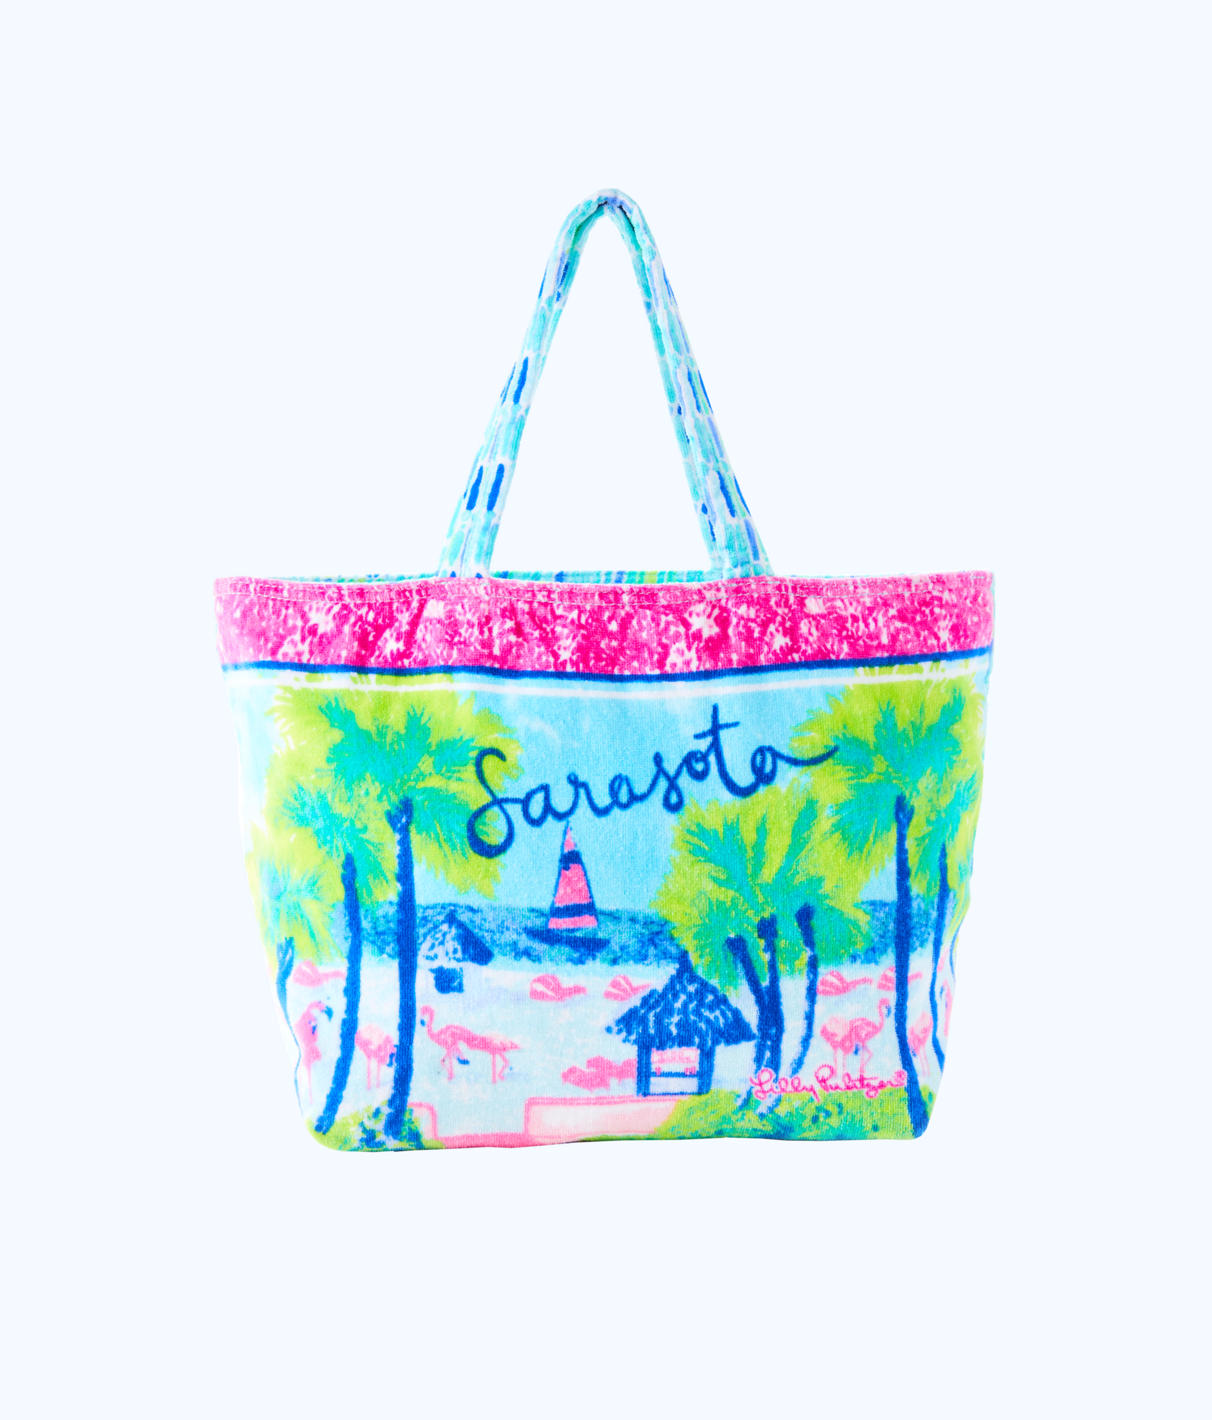 Lilly Pulitzer Lilly Pulitzer Destination Beach Tote